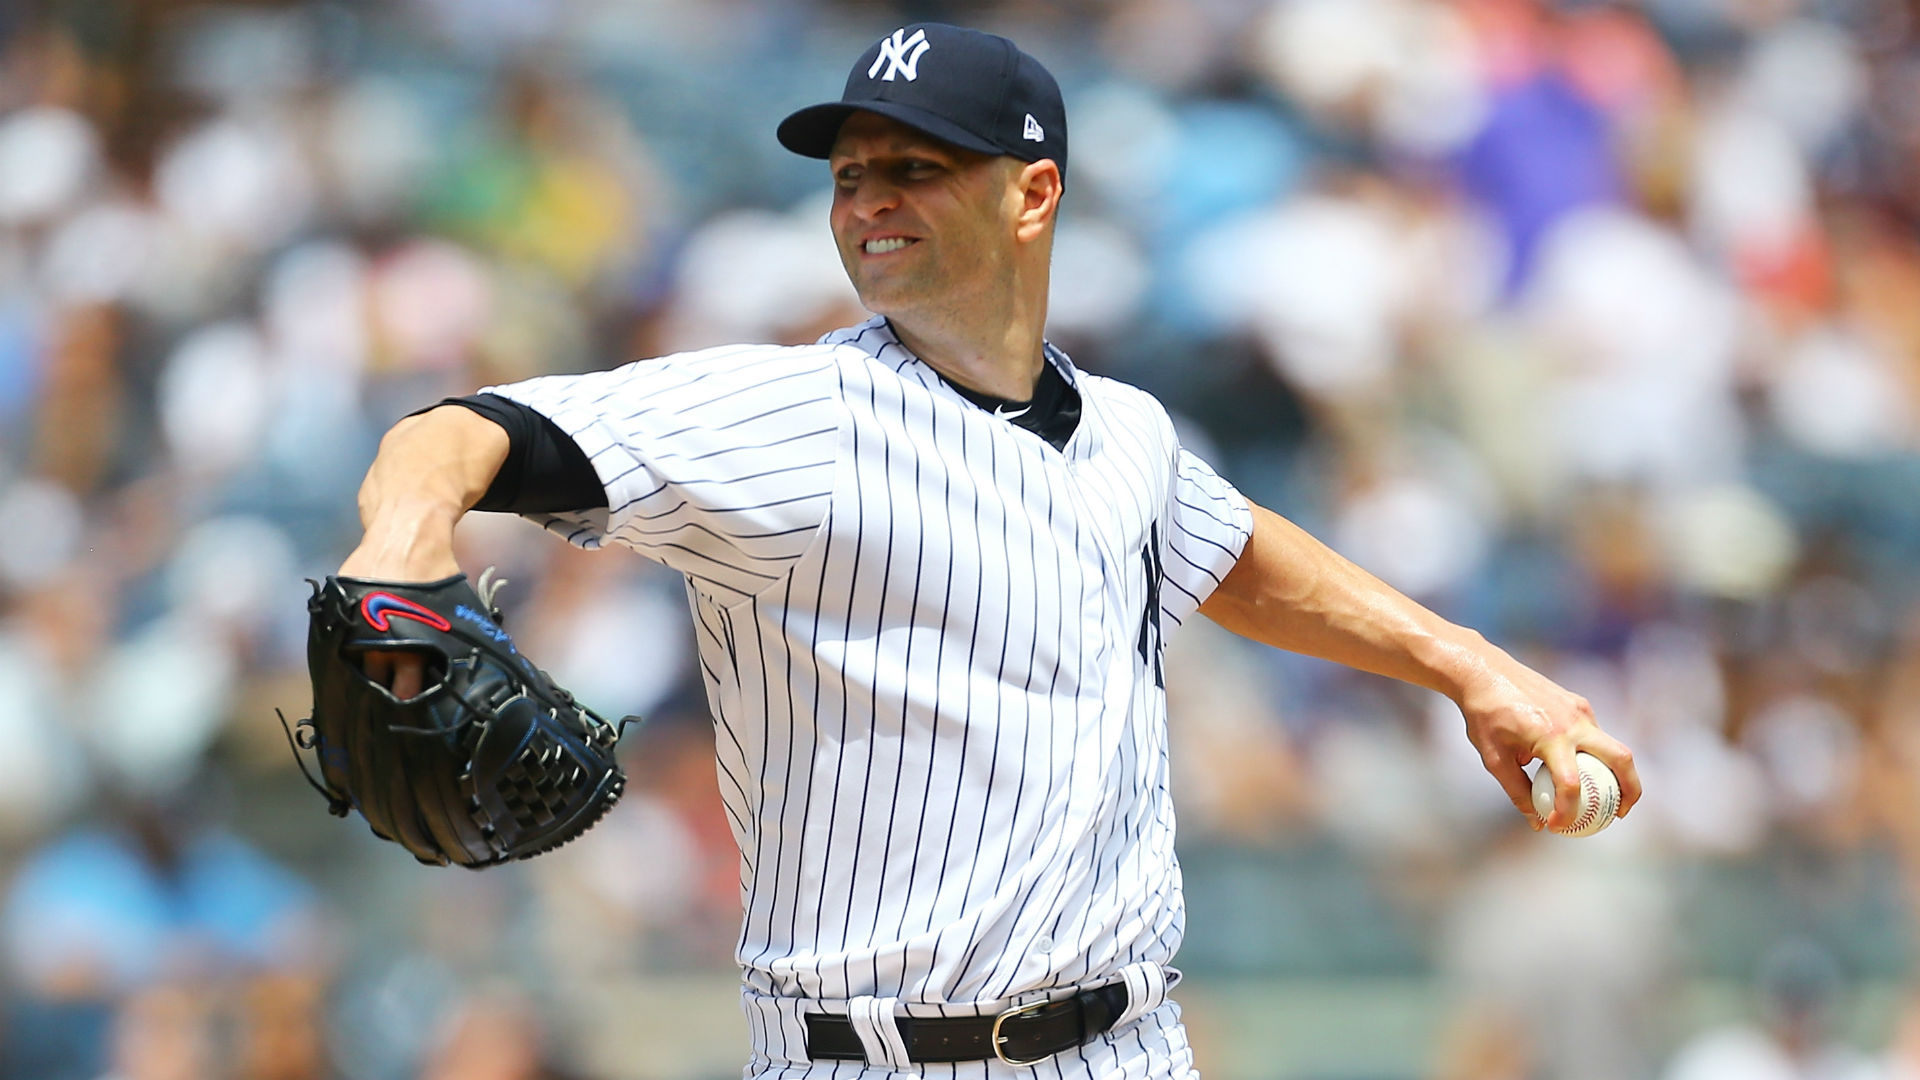 Newly Acquired Yankee Happ Sent Home With Hand, Foot And Mouth Disease